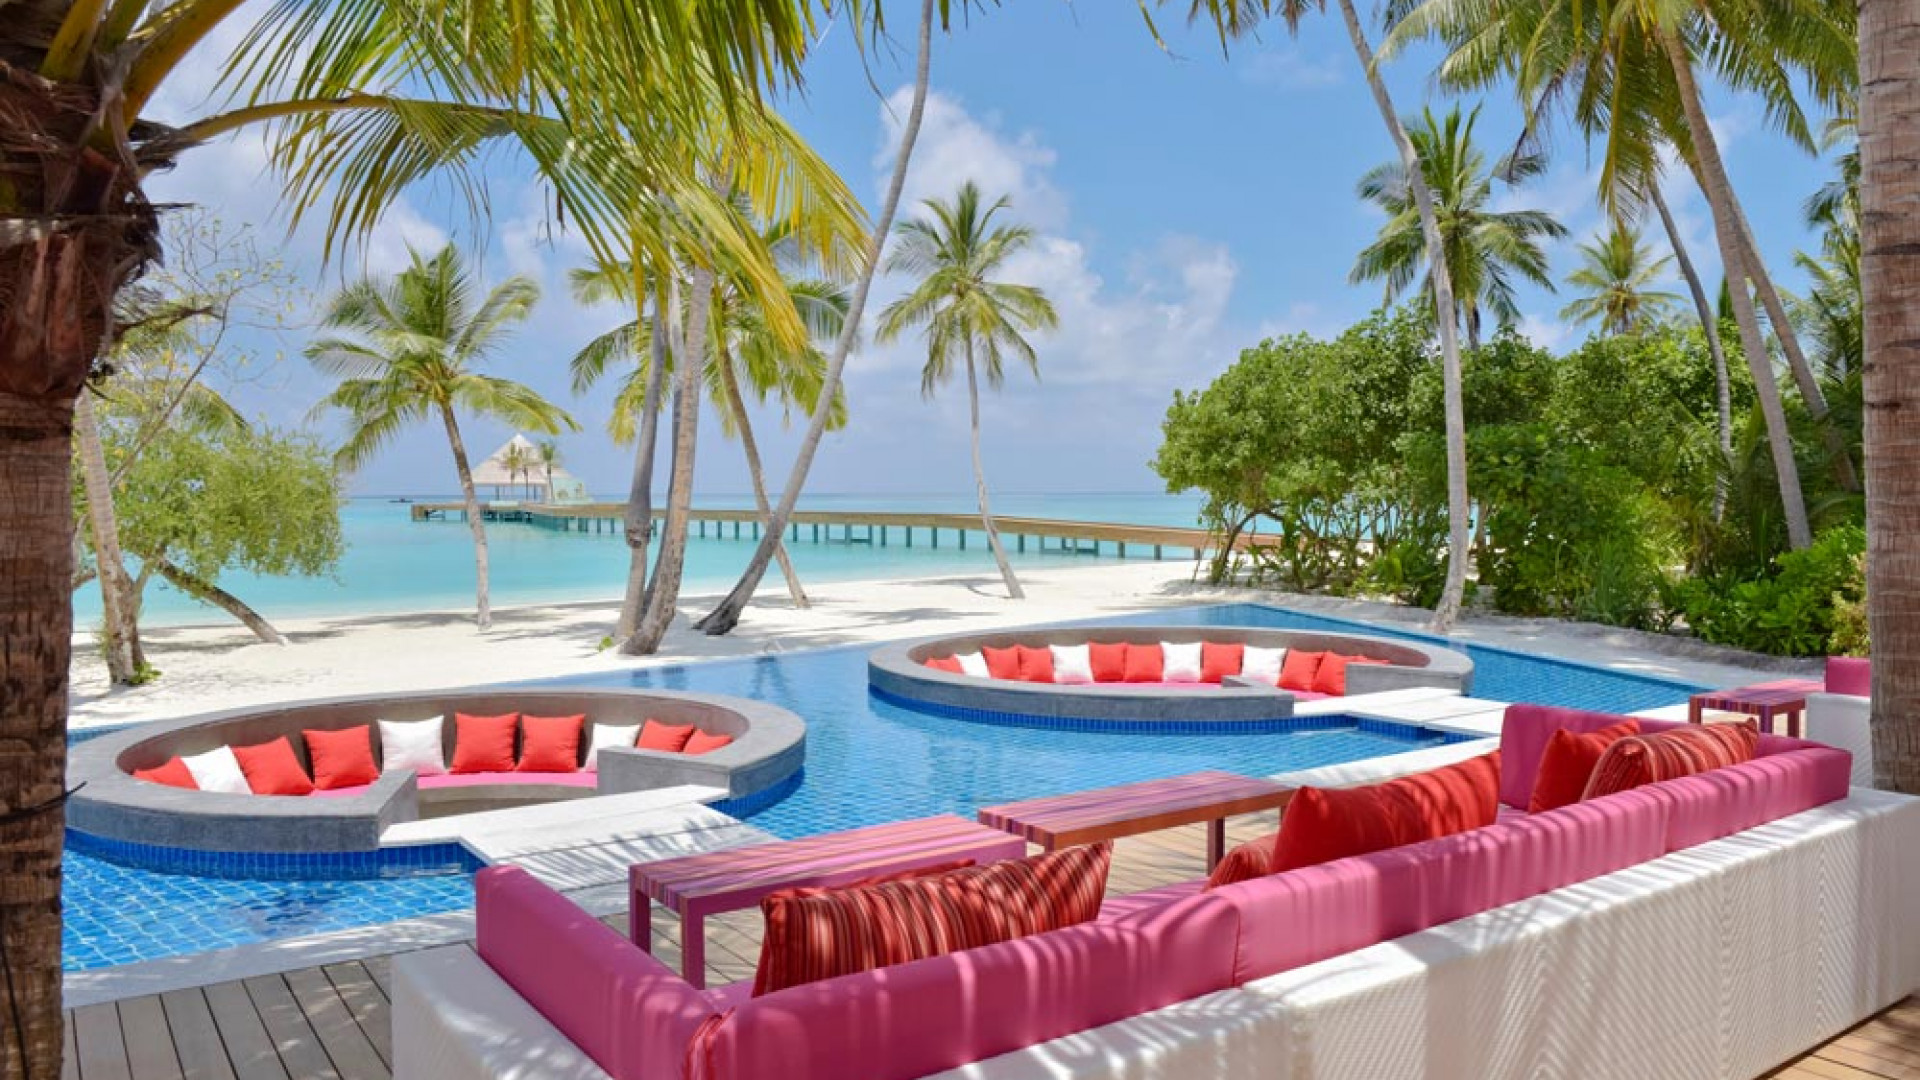 Outdoor pool at Kandima Maldives